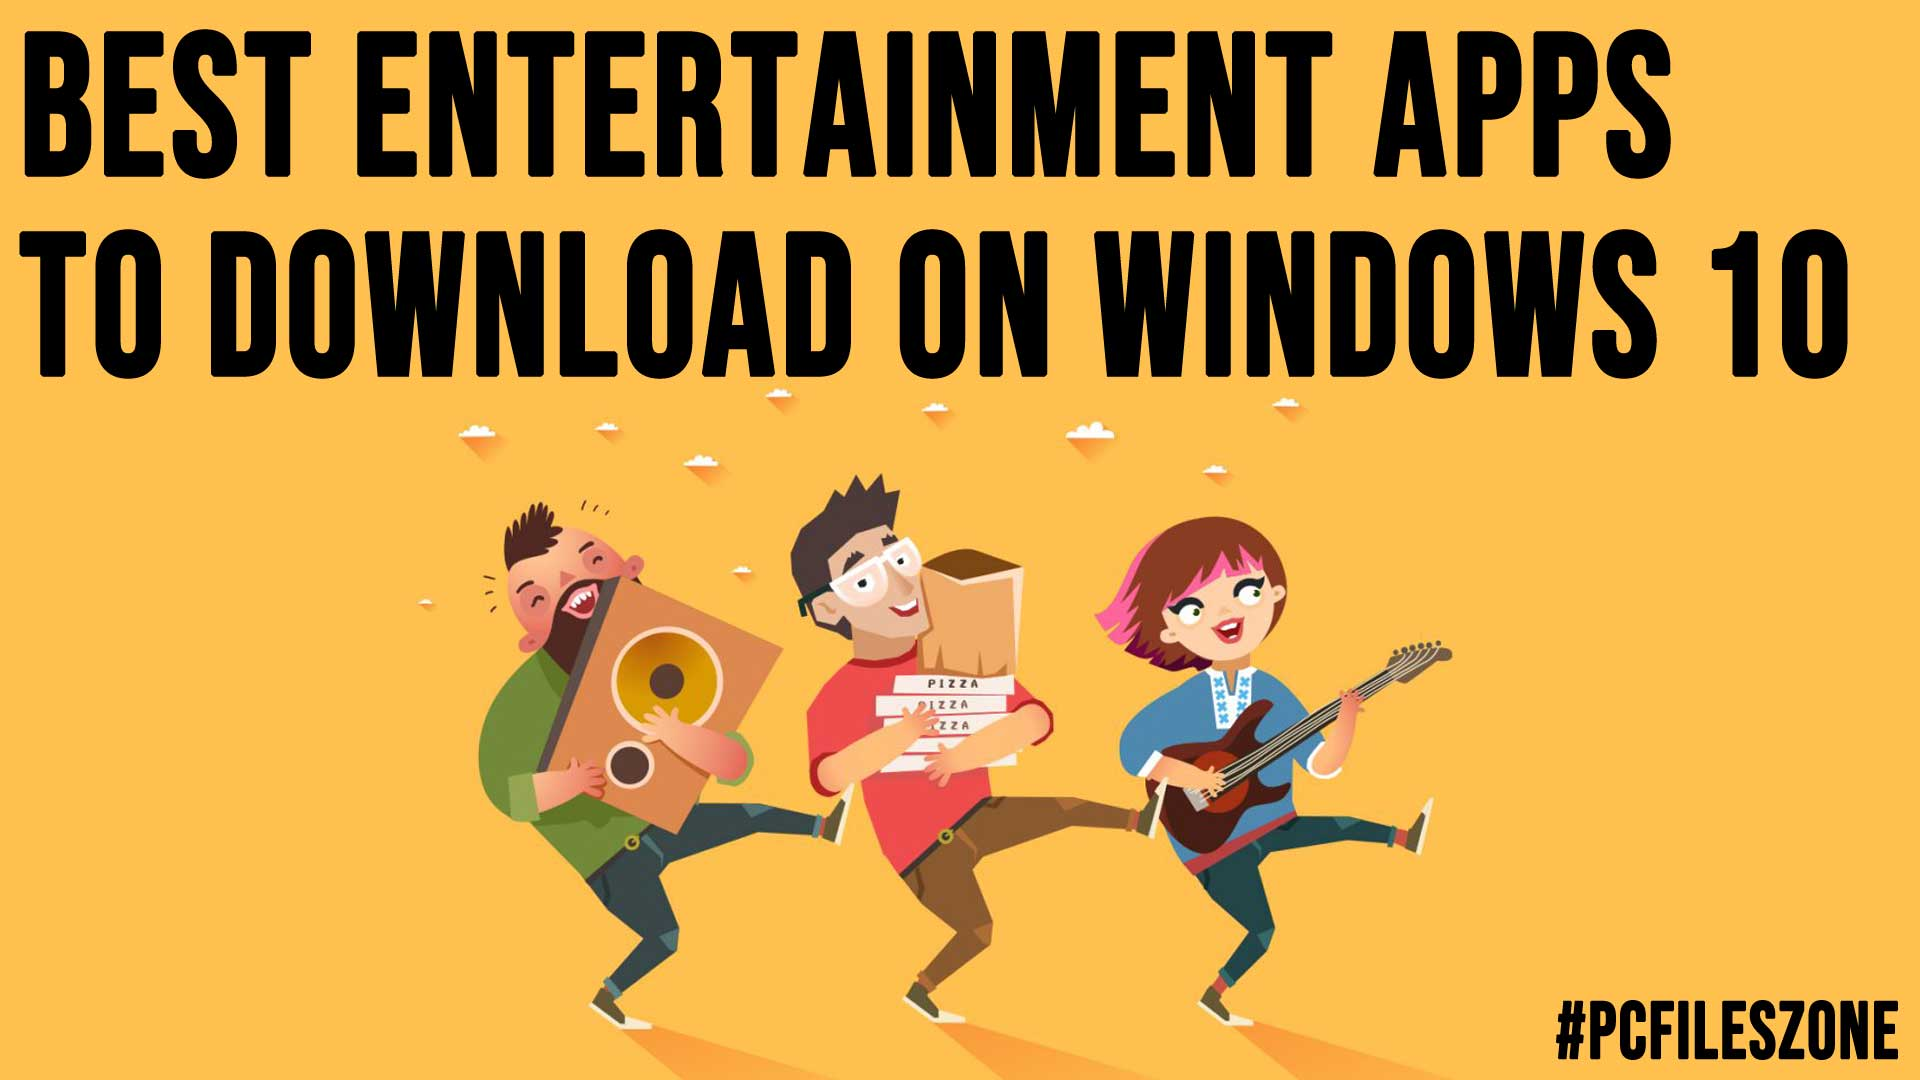 Best Entertainment Apps to Download on Windows 10